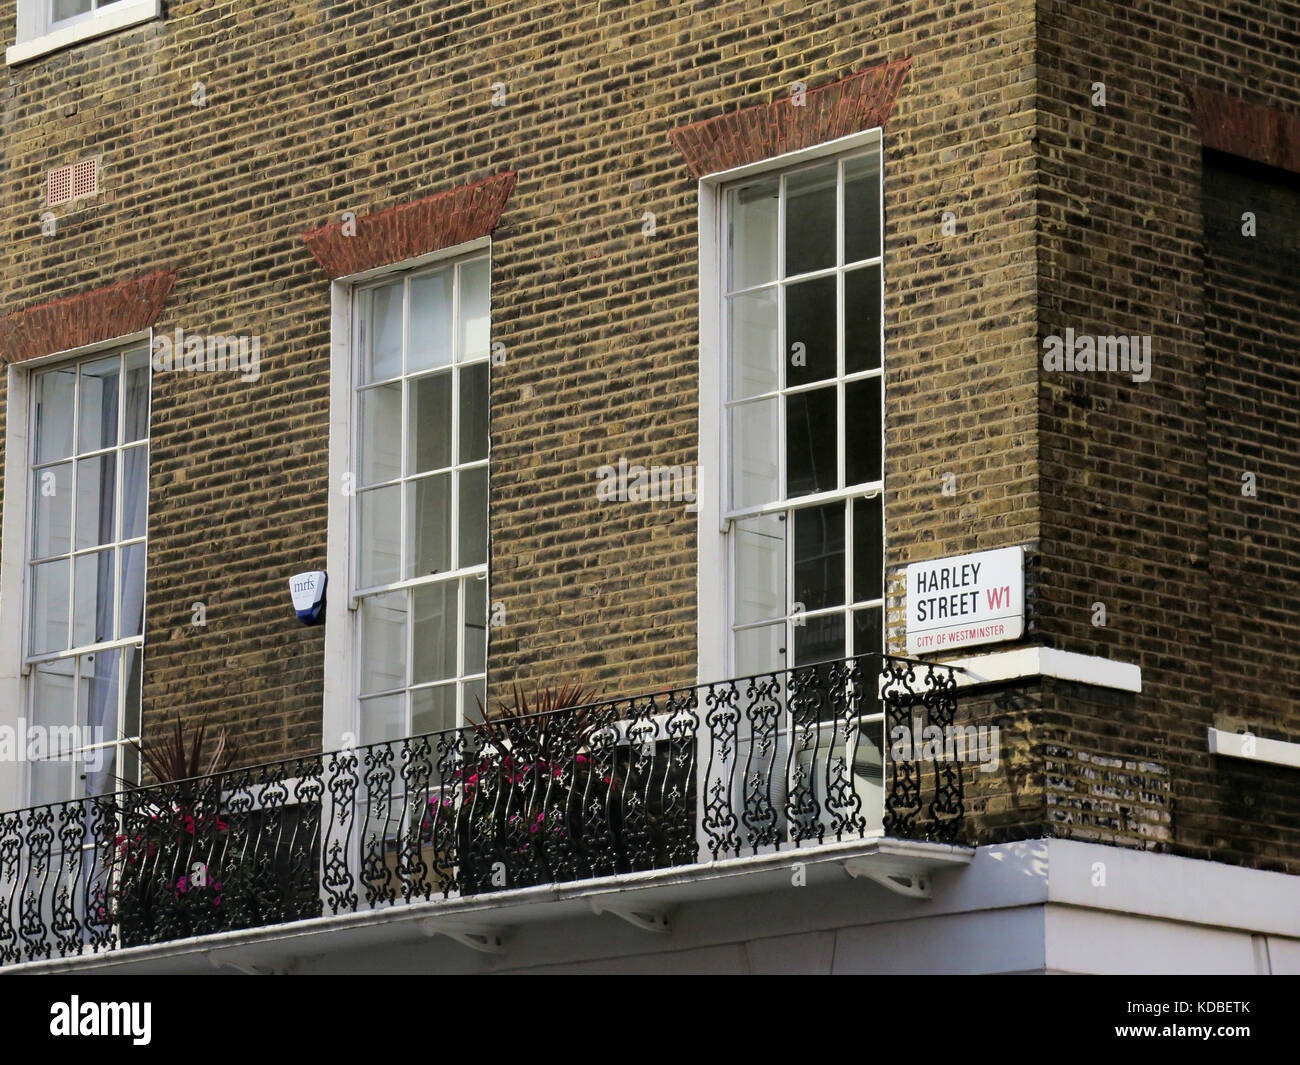 Harley Street sign, London - Stock Image